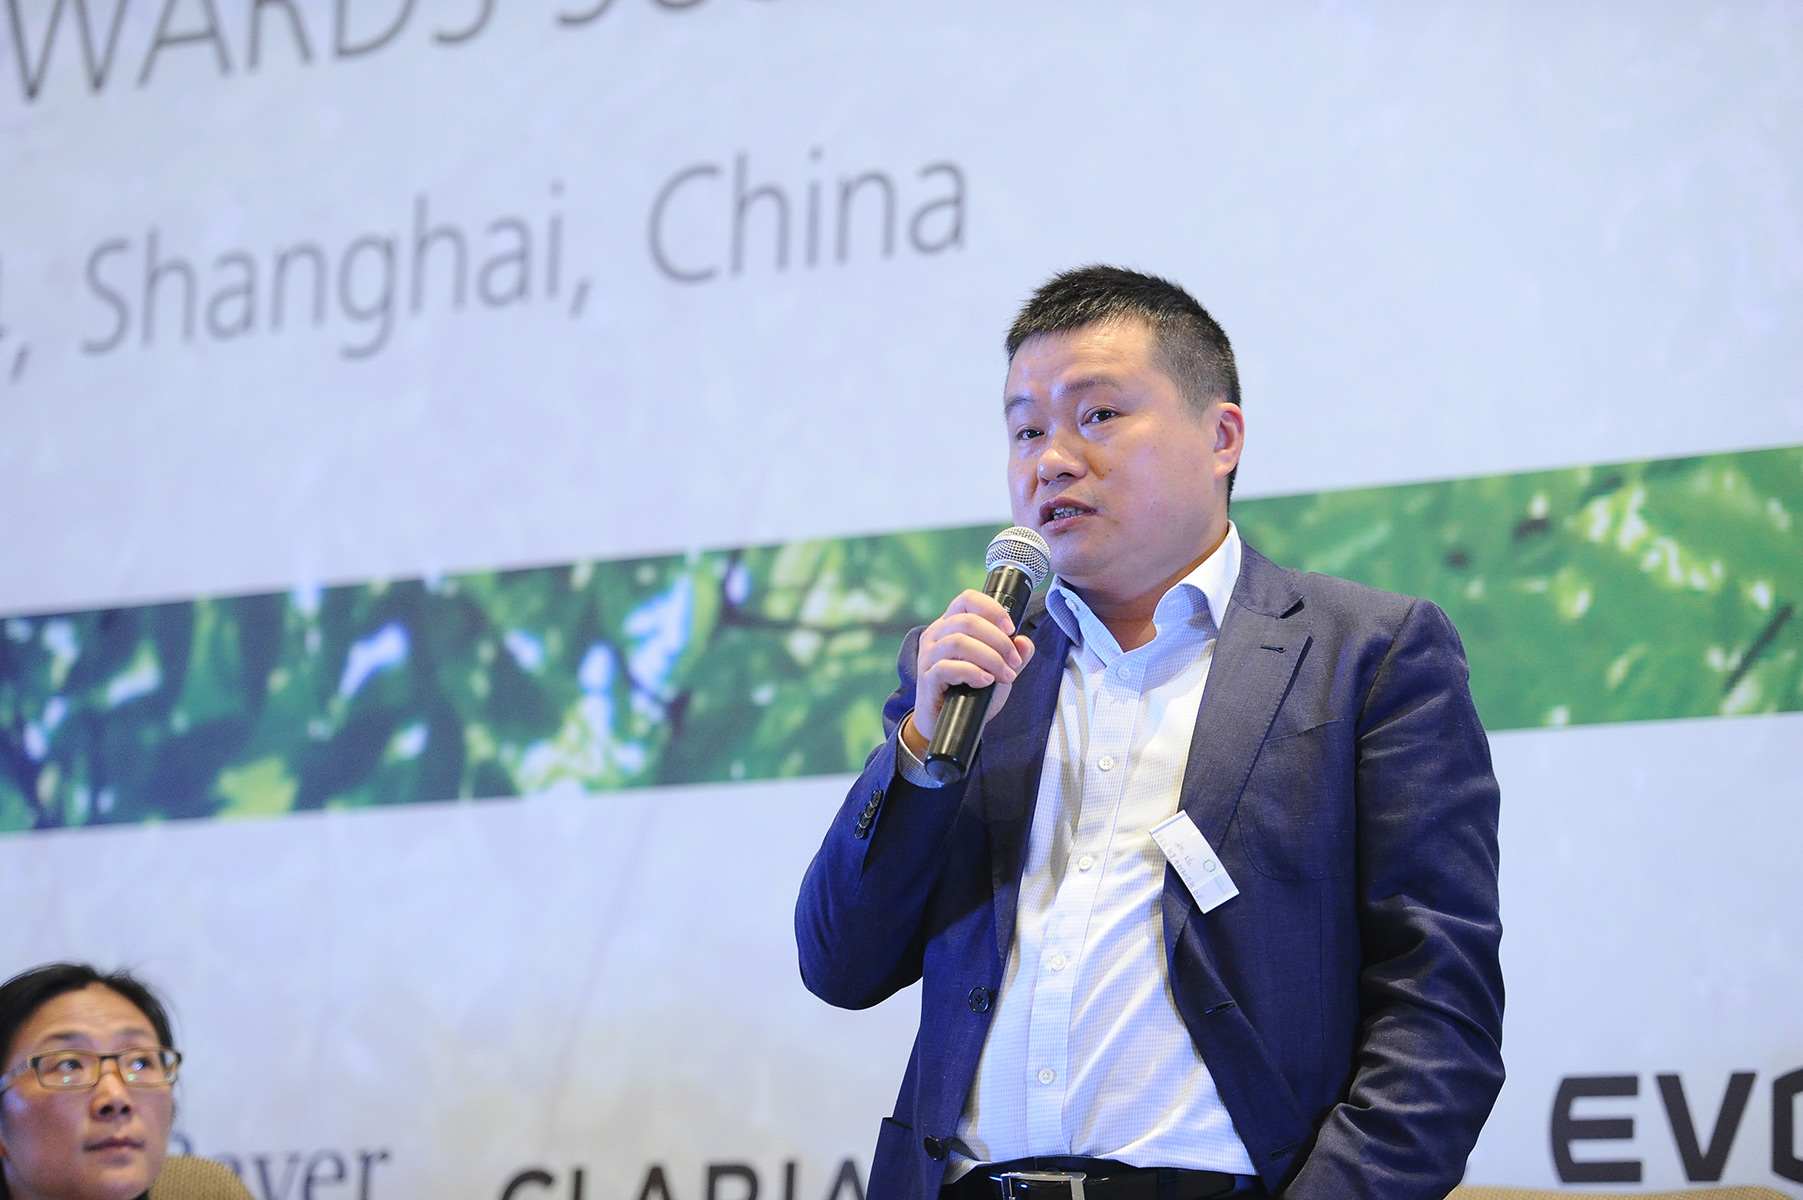 Tfs China Conference Man Speaking To Audience